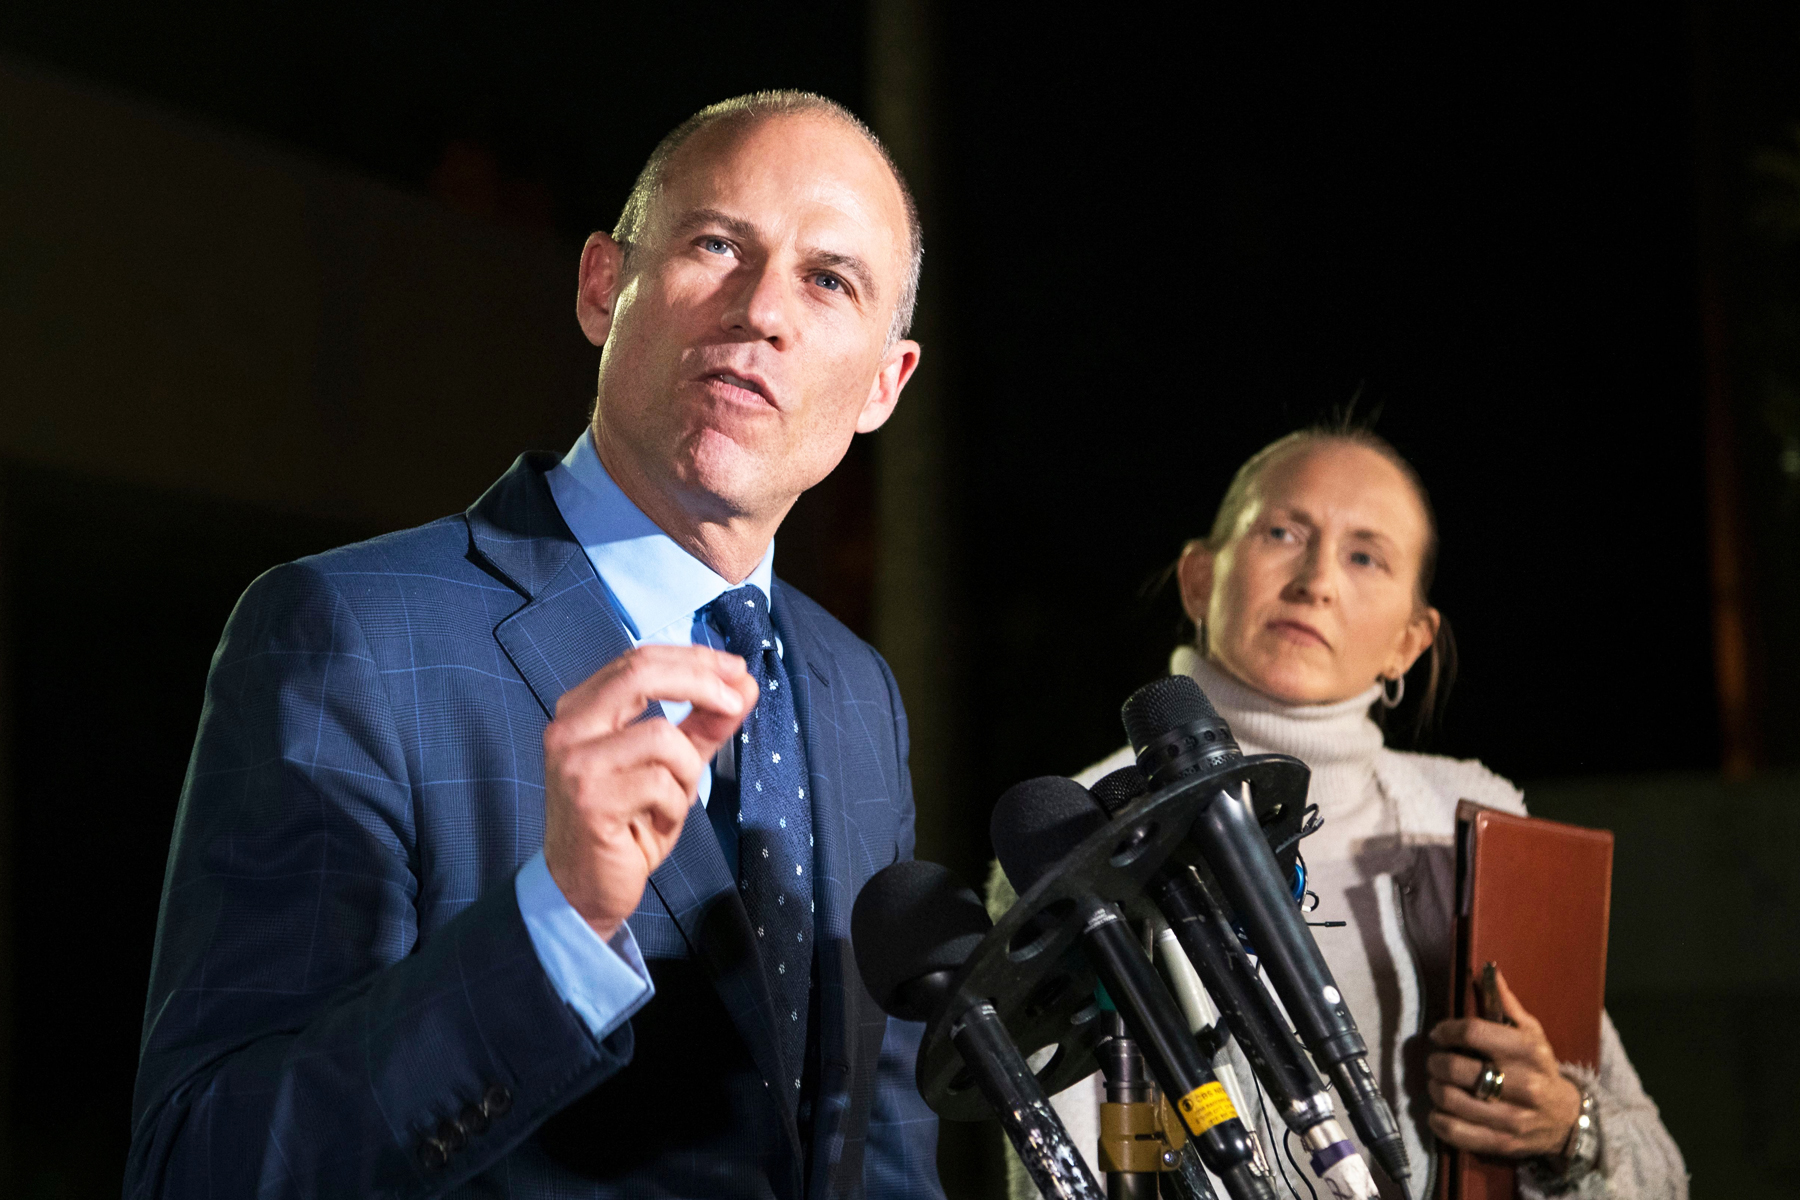 What's Going on With Michael Avenatti's Arrest?